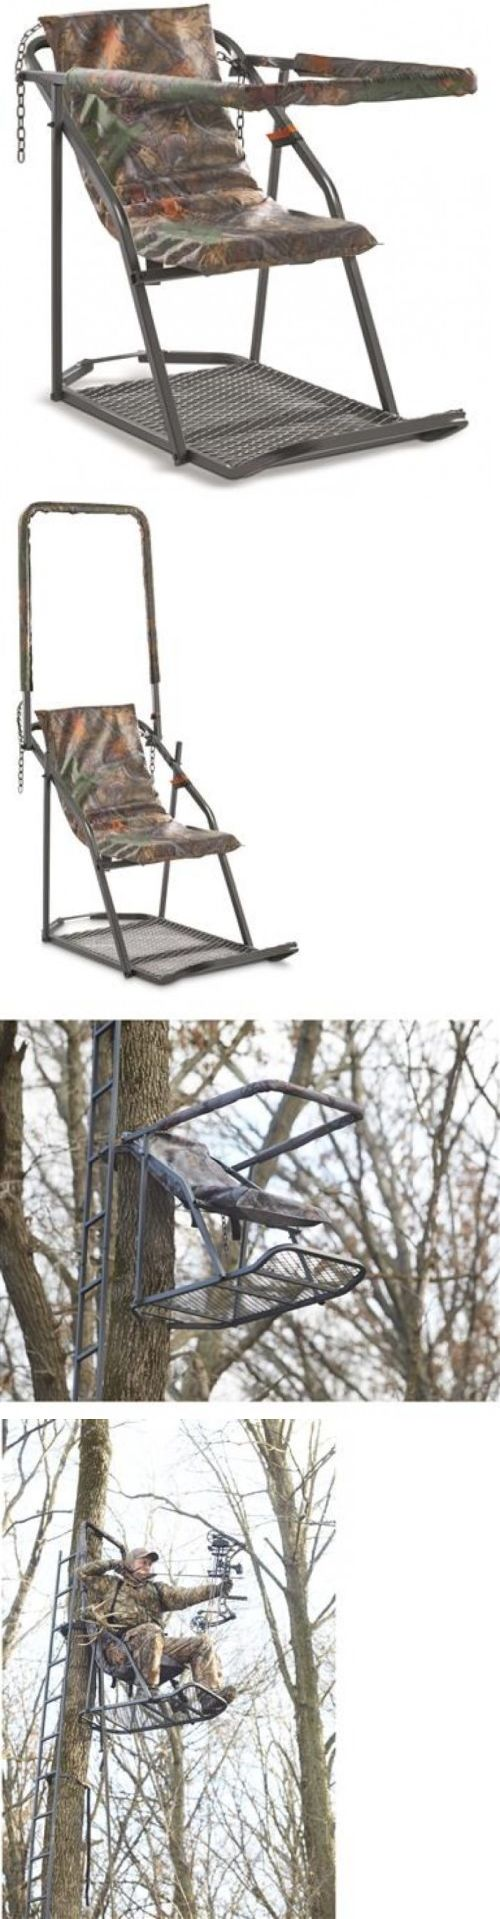 Bow hunting chair - Tree Stands 52508 Hunting Deer Stand Big Game Tower Tree Stand Turkey Coyote Outdoors Safety